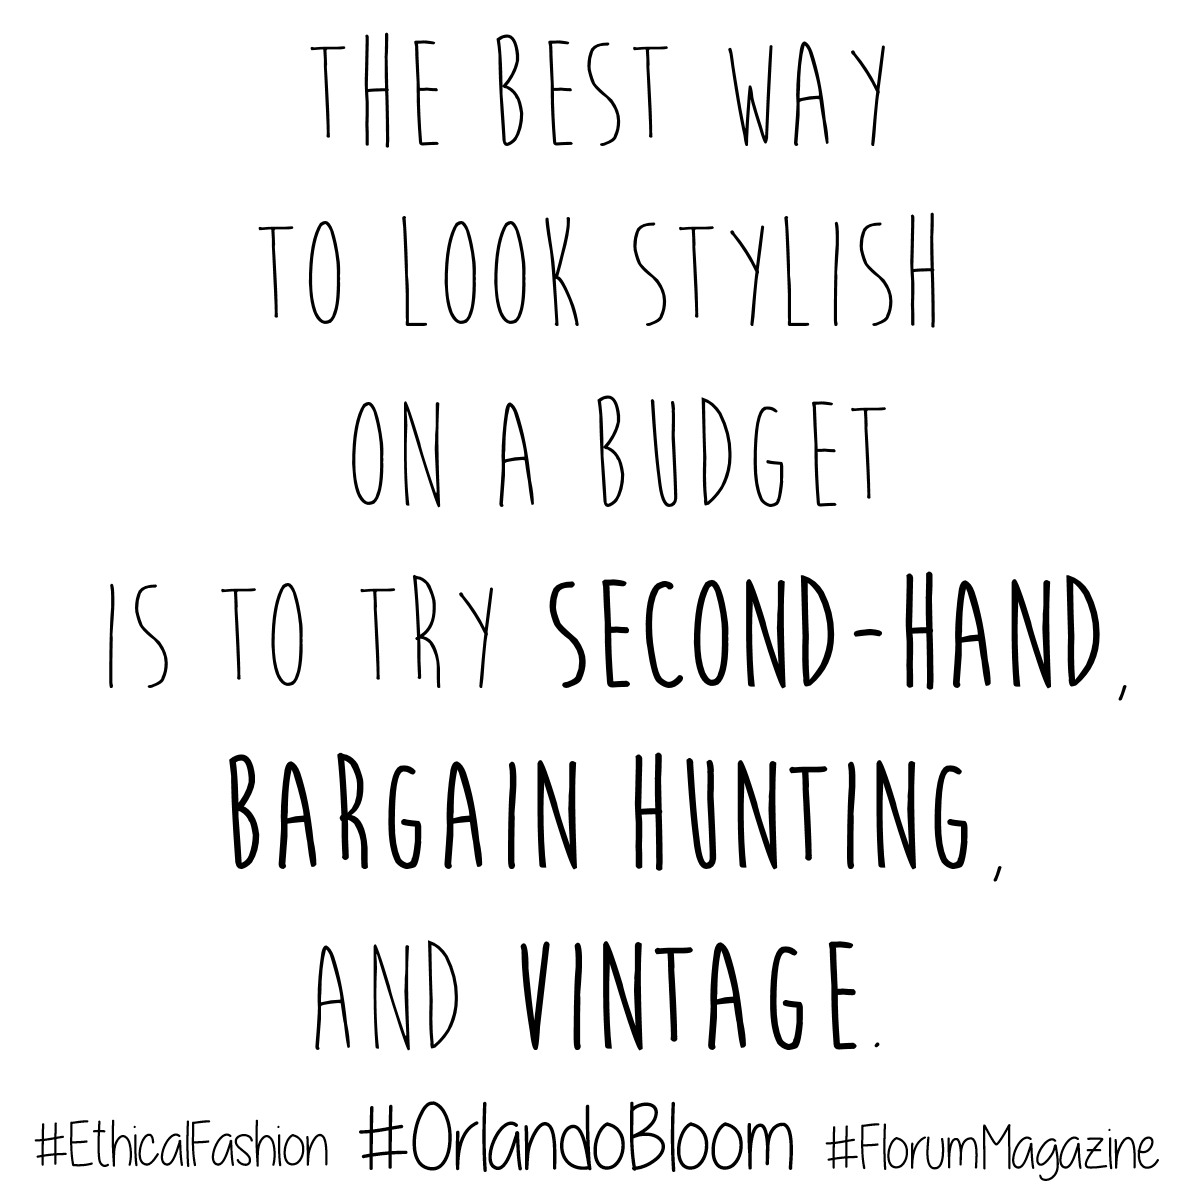 sustainable fashion quotes - fashion revolution Consume with a conscious - vegan leather - animal free - orlando bloom florum fashion magazine - noelle lynne - vintage shopping qoutes.jpg